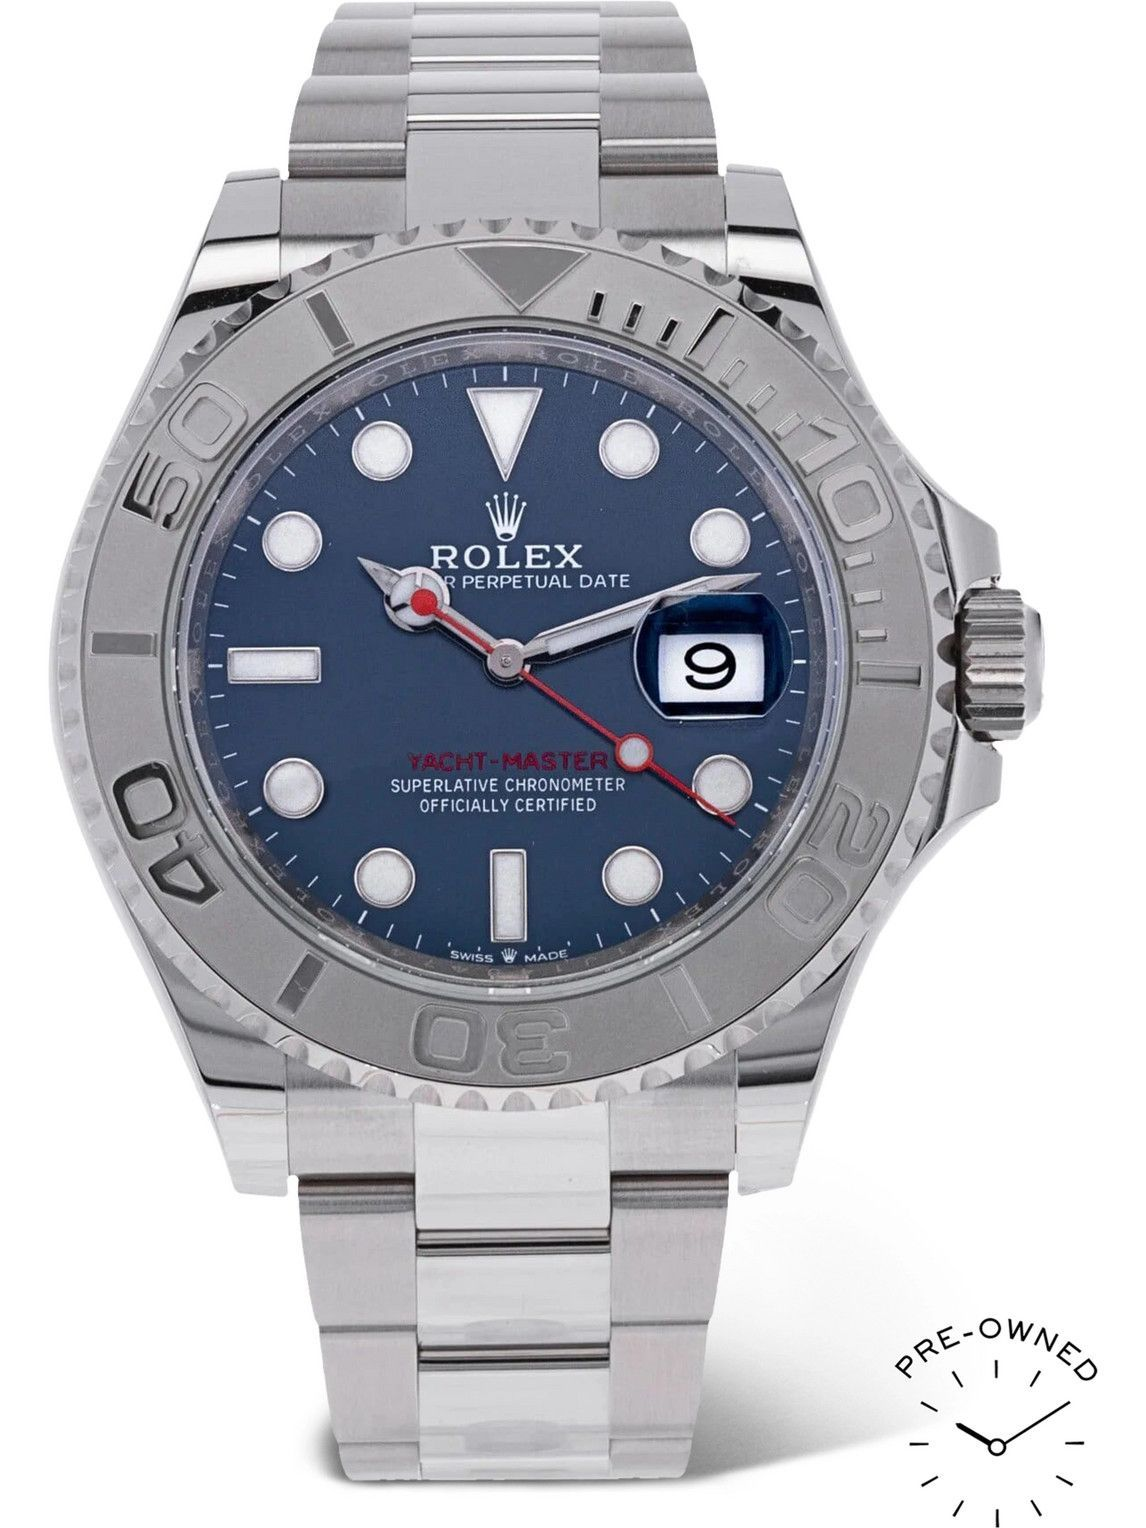 Photo: ROLEX - Pre-Owned 2021 Yacht-Master Automatic 40mm Platinum and Oystersteel Watch, Ref. No. 126622